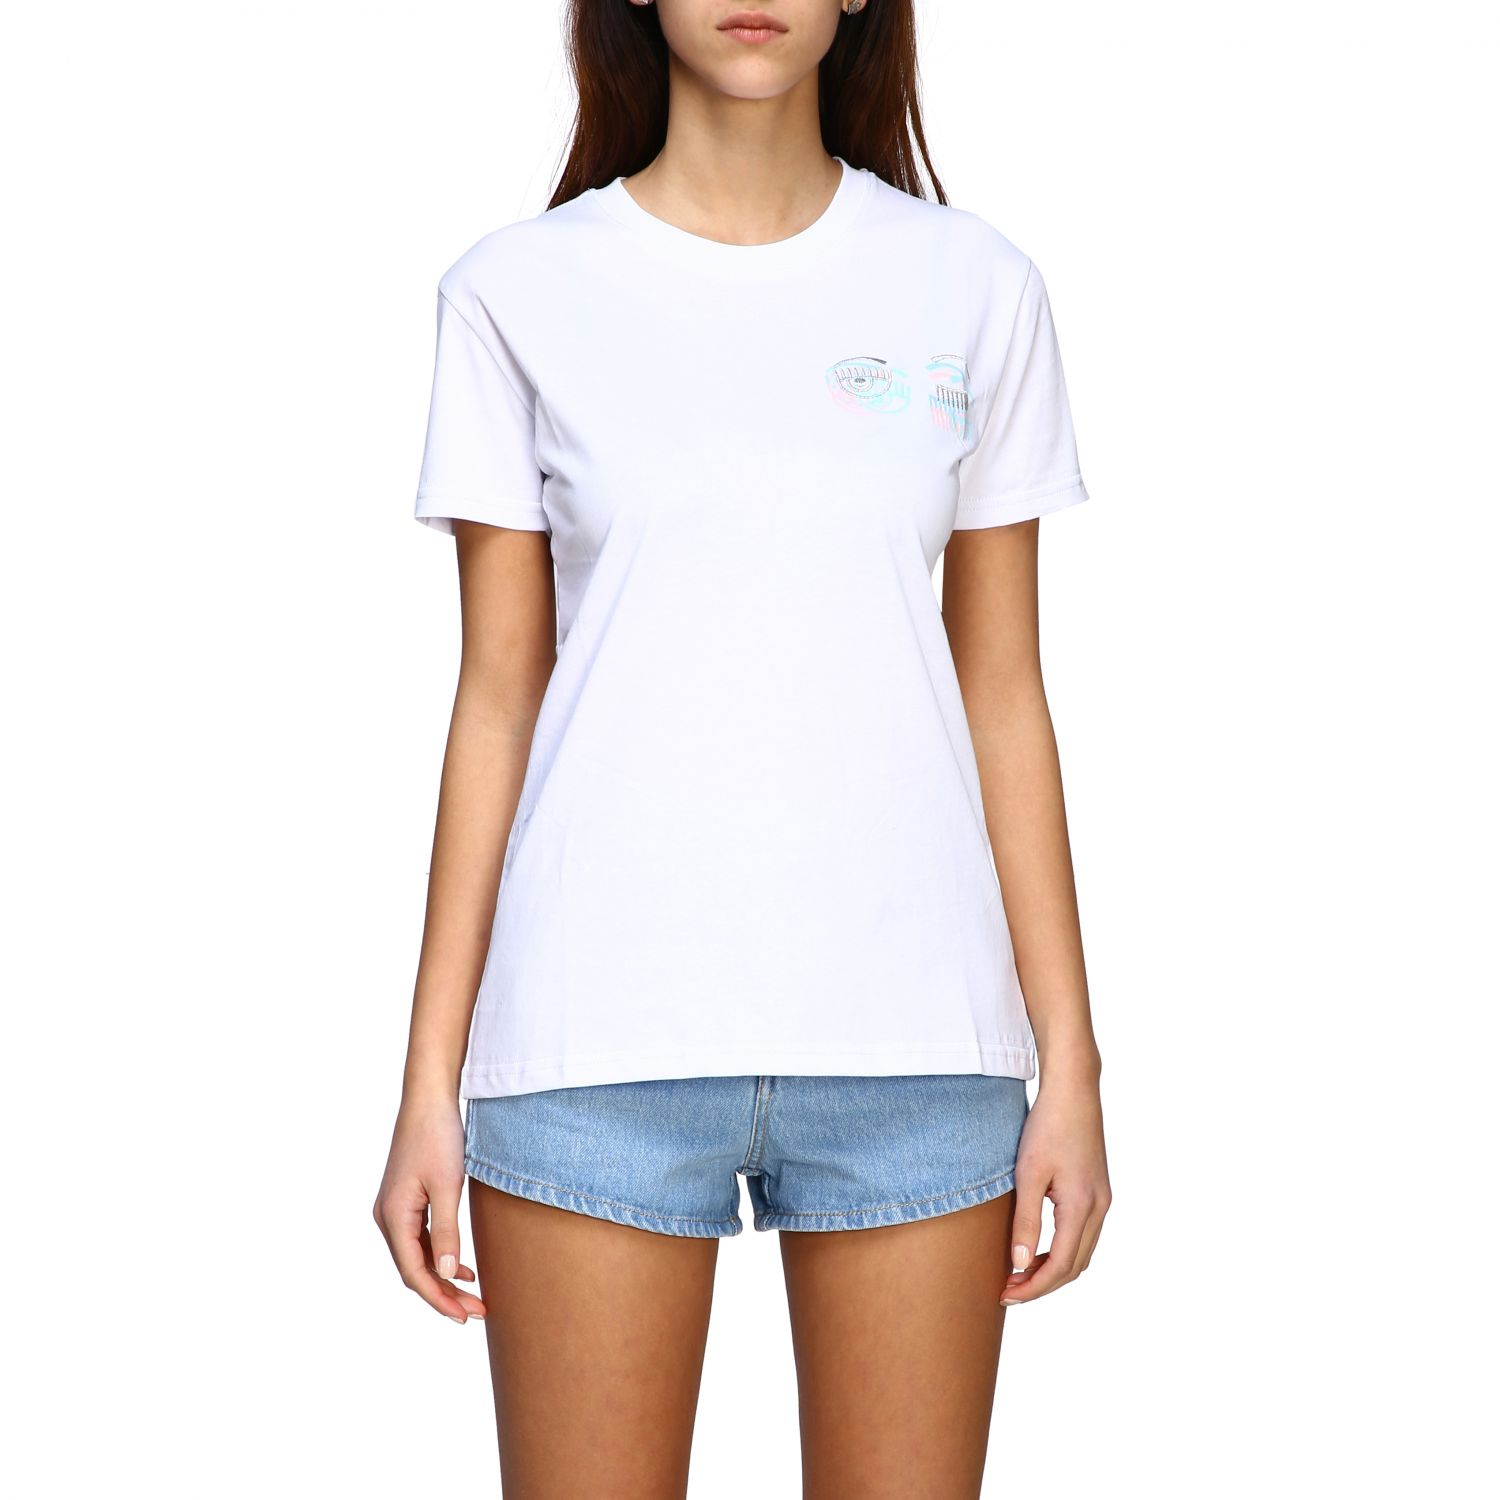 T-shirt women Chiara Ferragni white 1